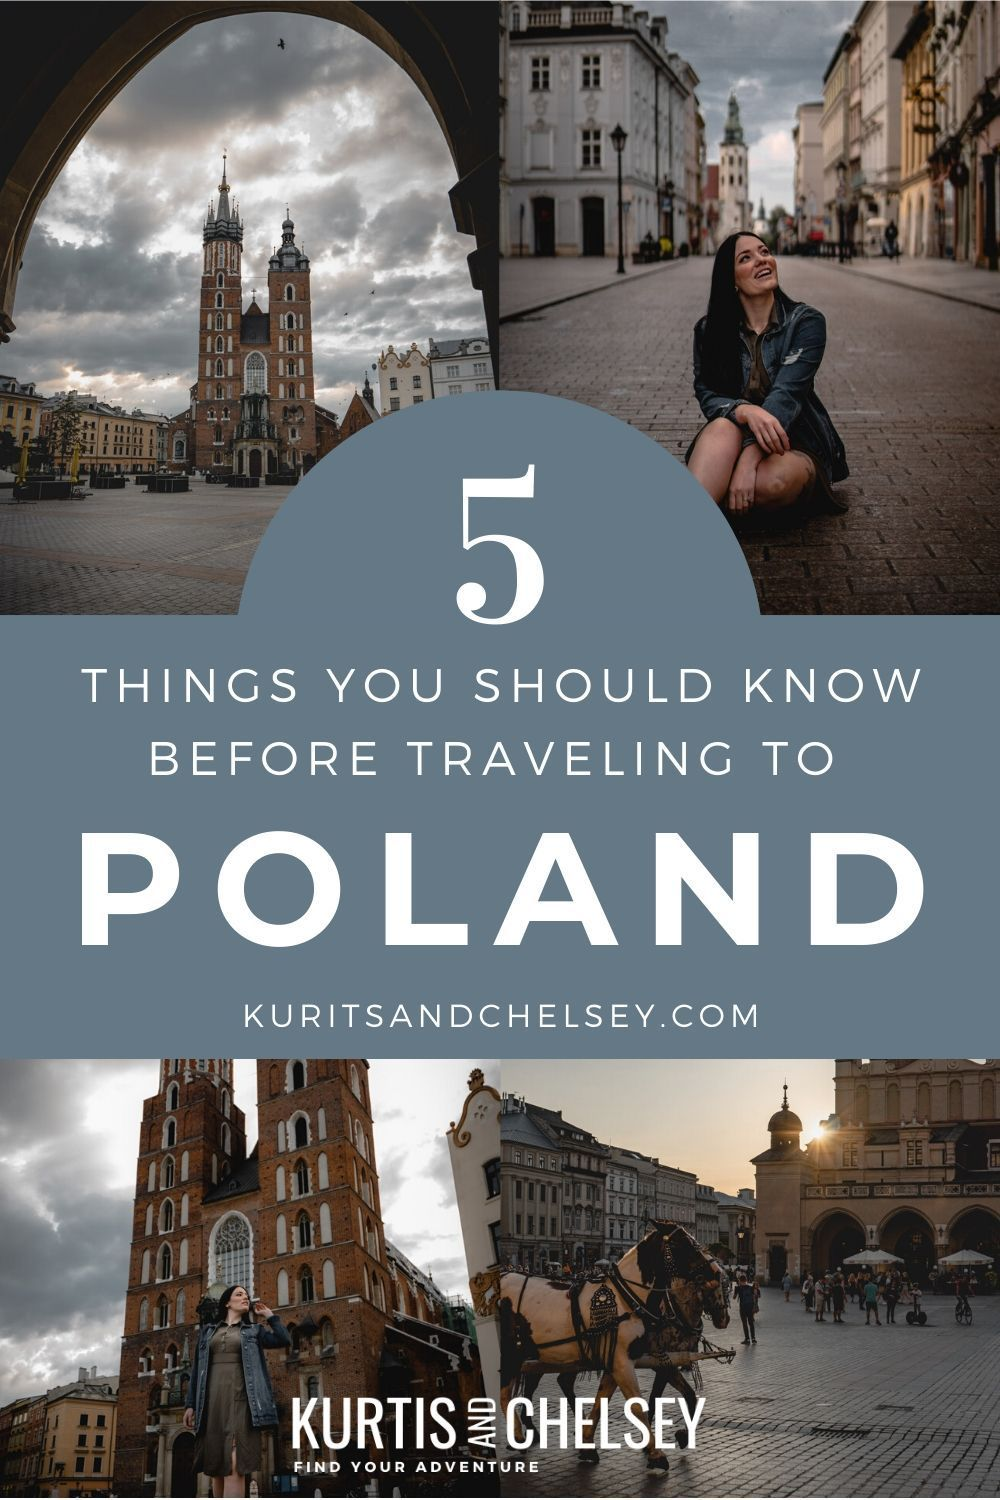 Everything you need to know for visiting Krakow Poland for the first time.  #travelguide #travel #poland #krakow